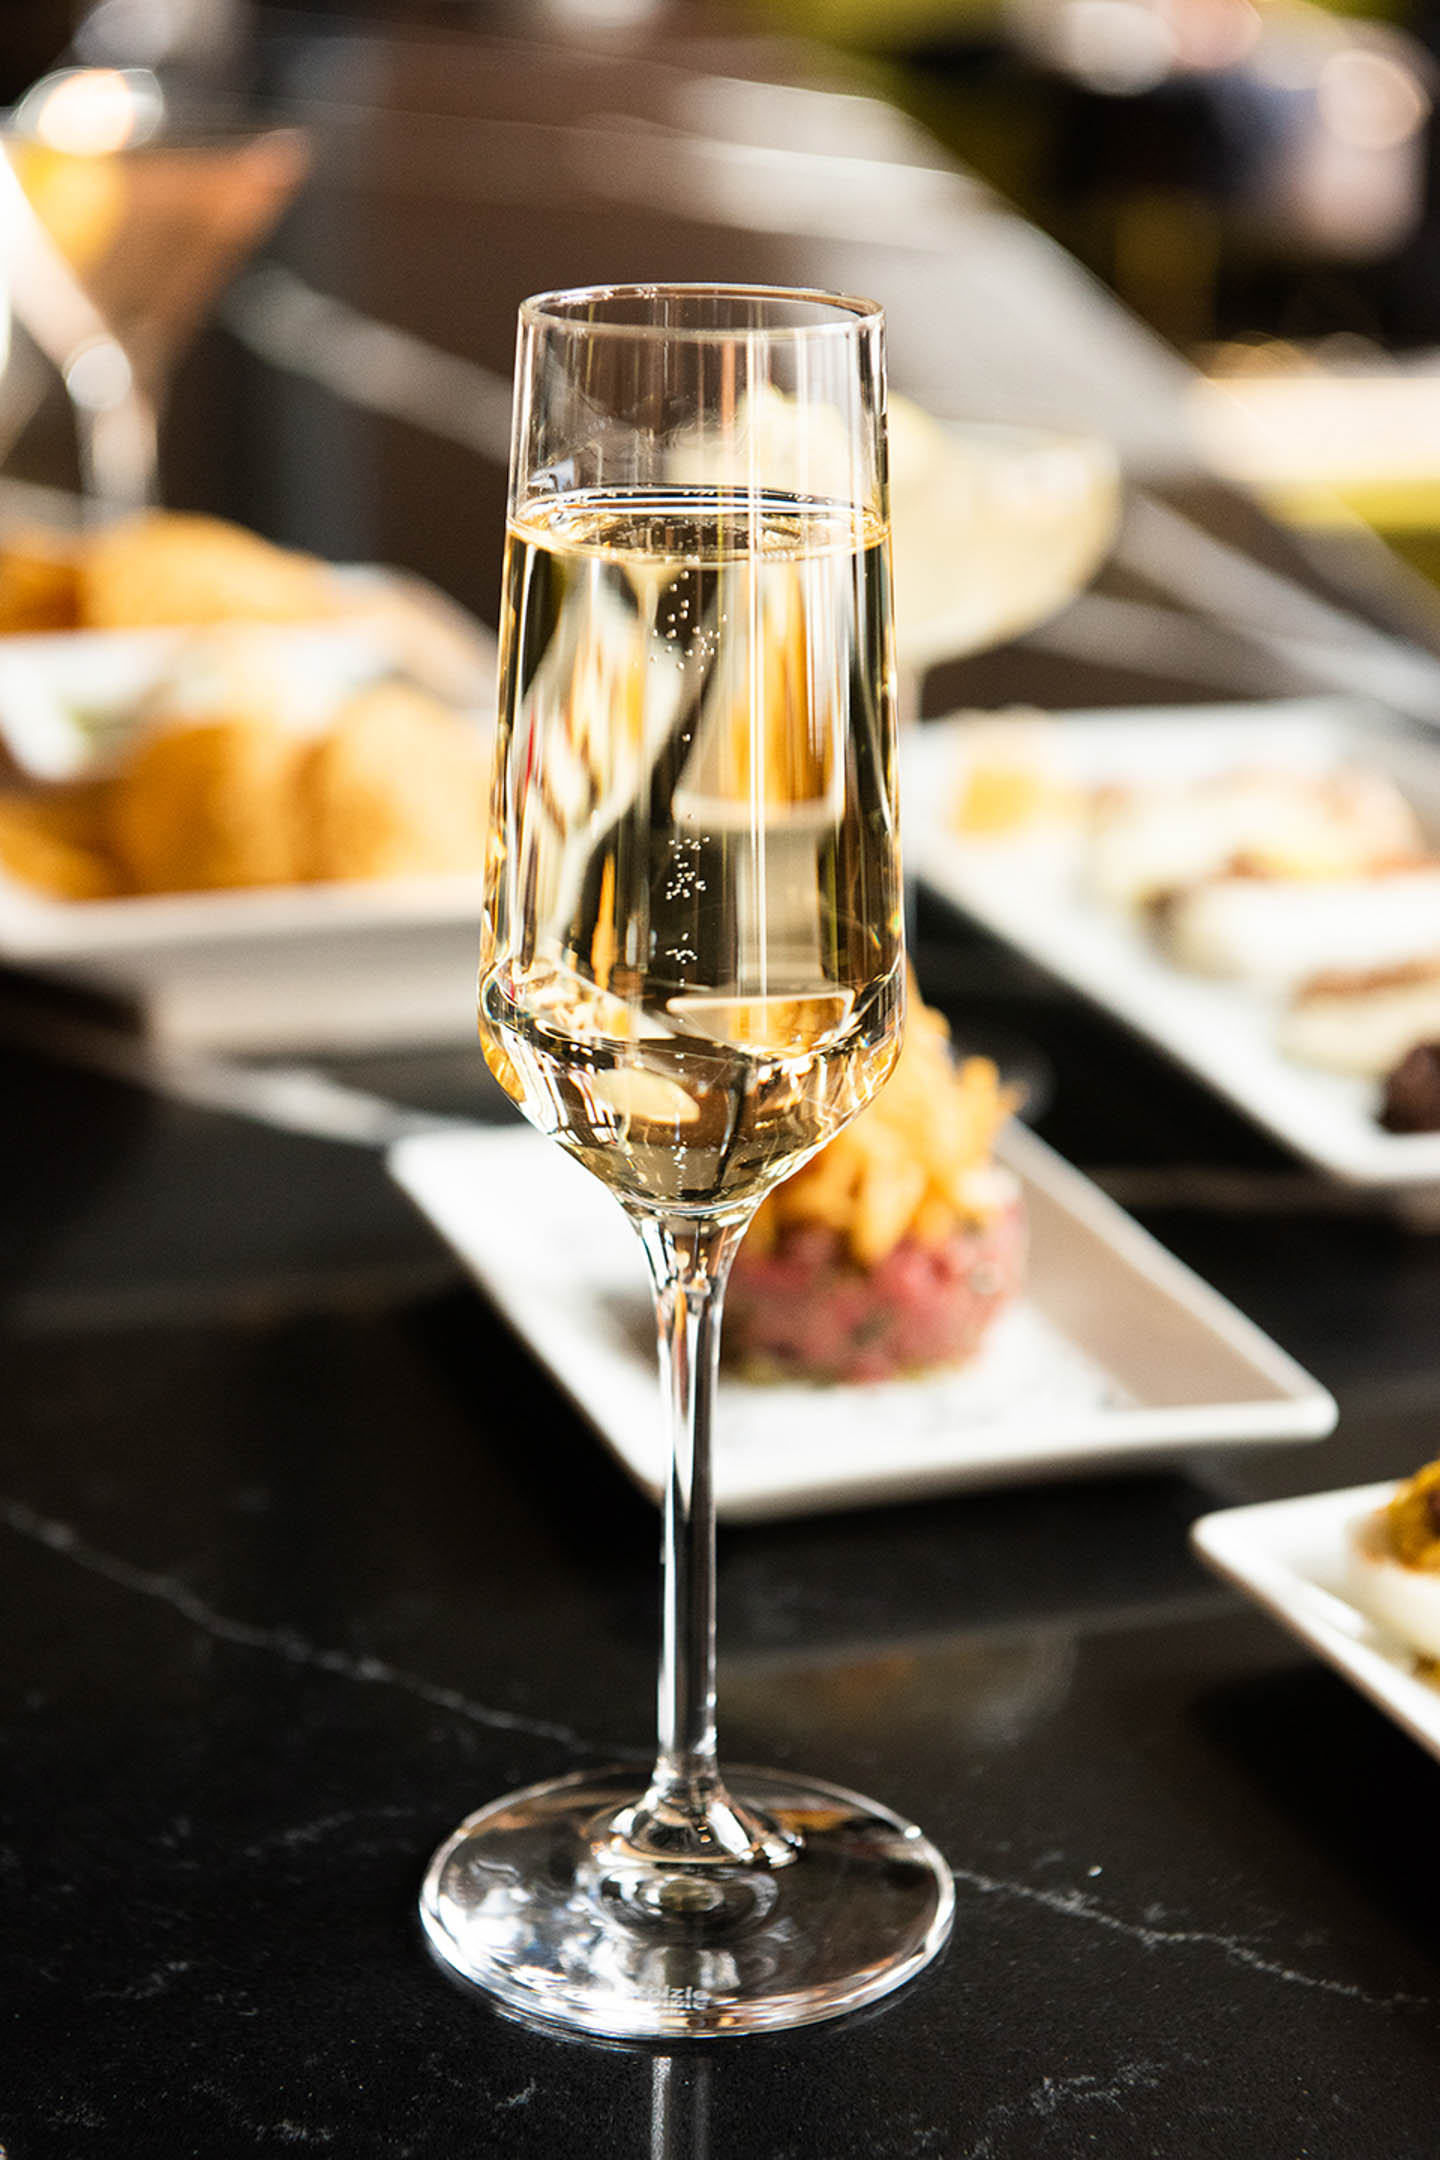 Charleston Food Photograpy for Bourbon n' Bubbles by Reese Moore Photography